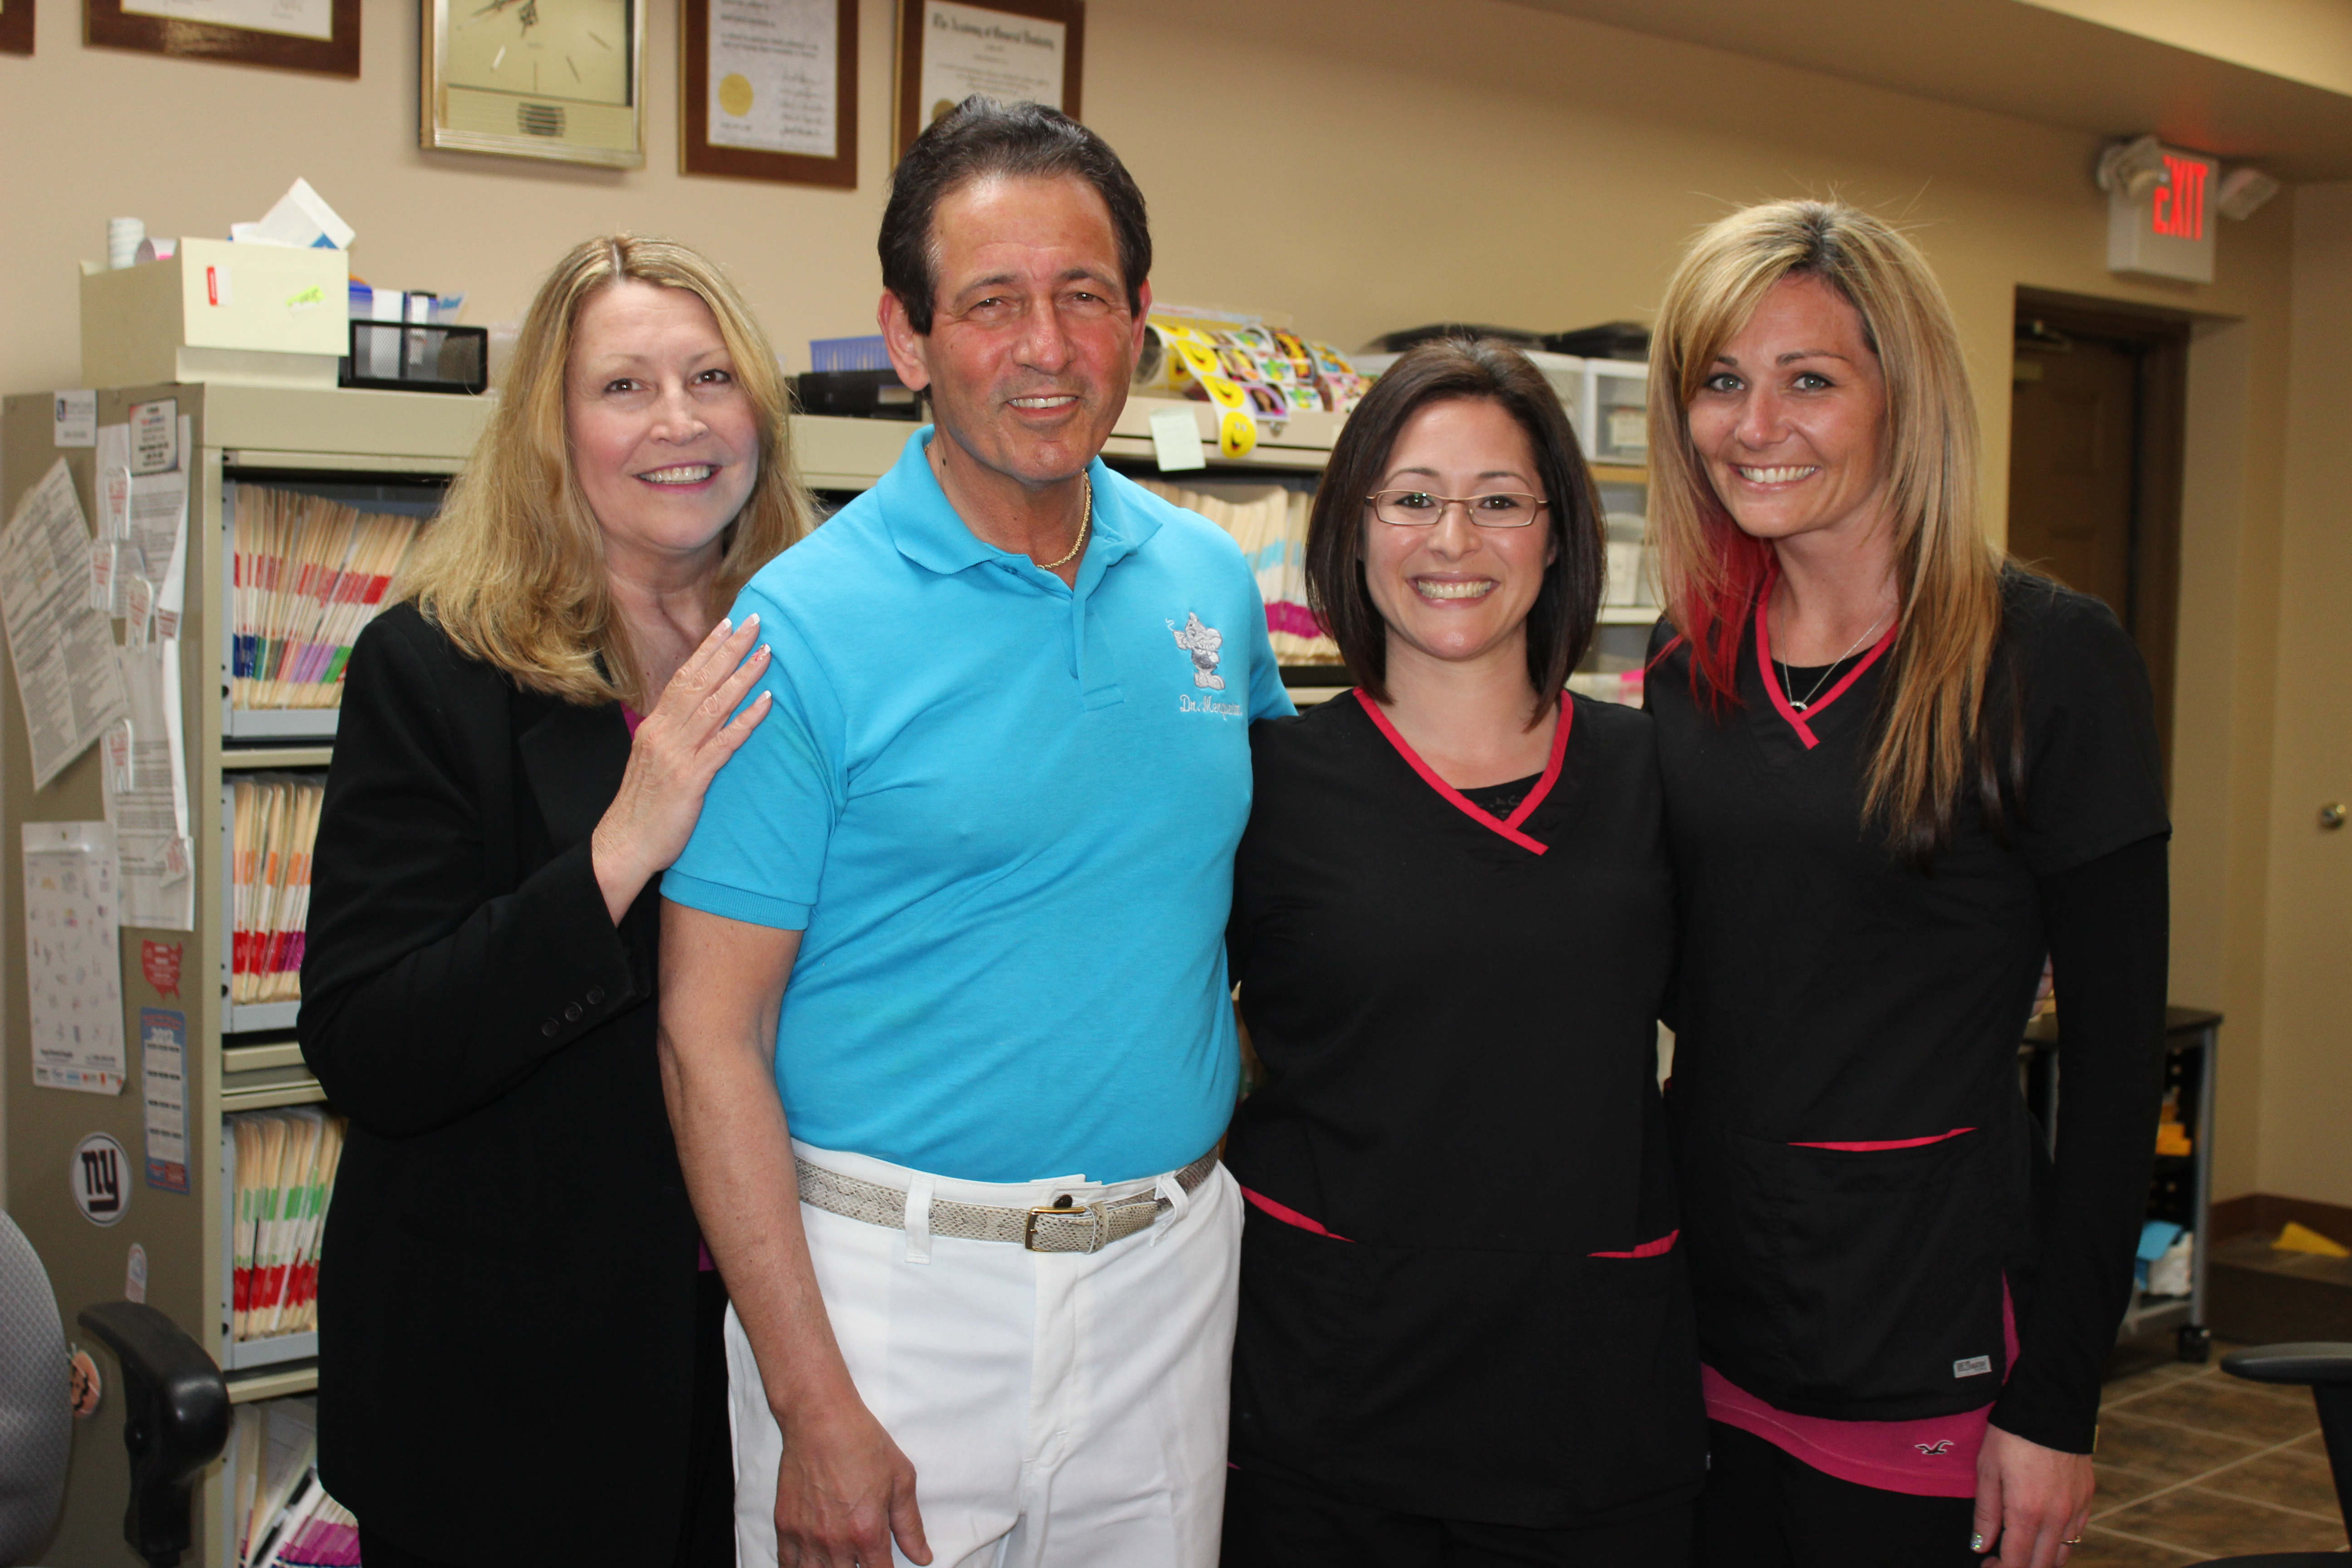 Warren Merguerian, DDS. reviews | Other at 557 Fischer Blvd - Toms River NJ